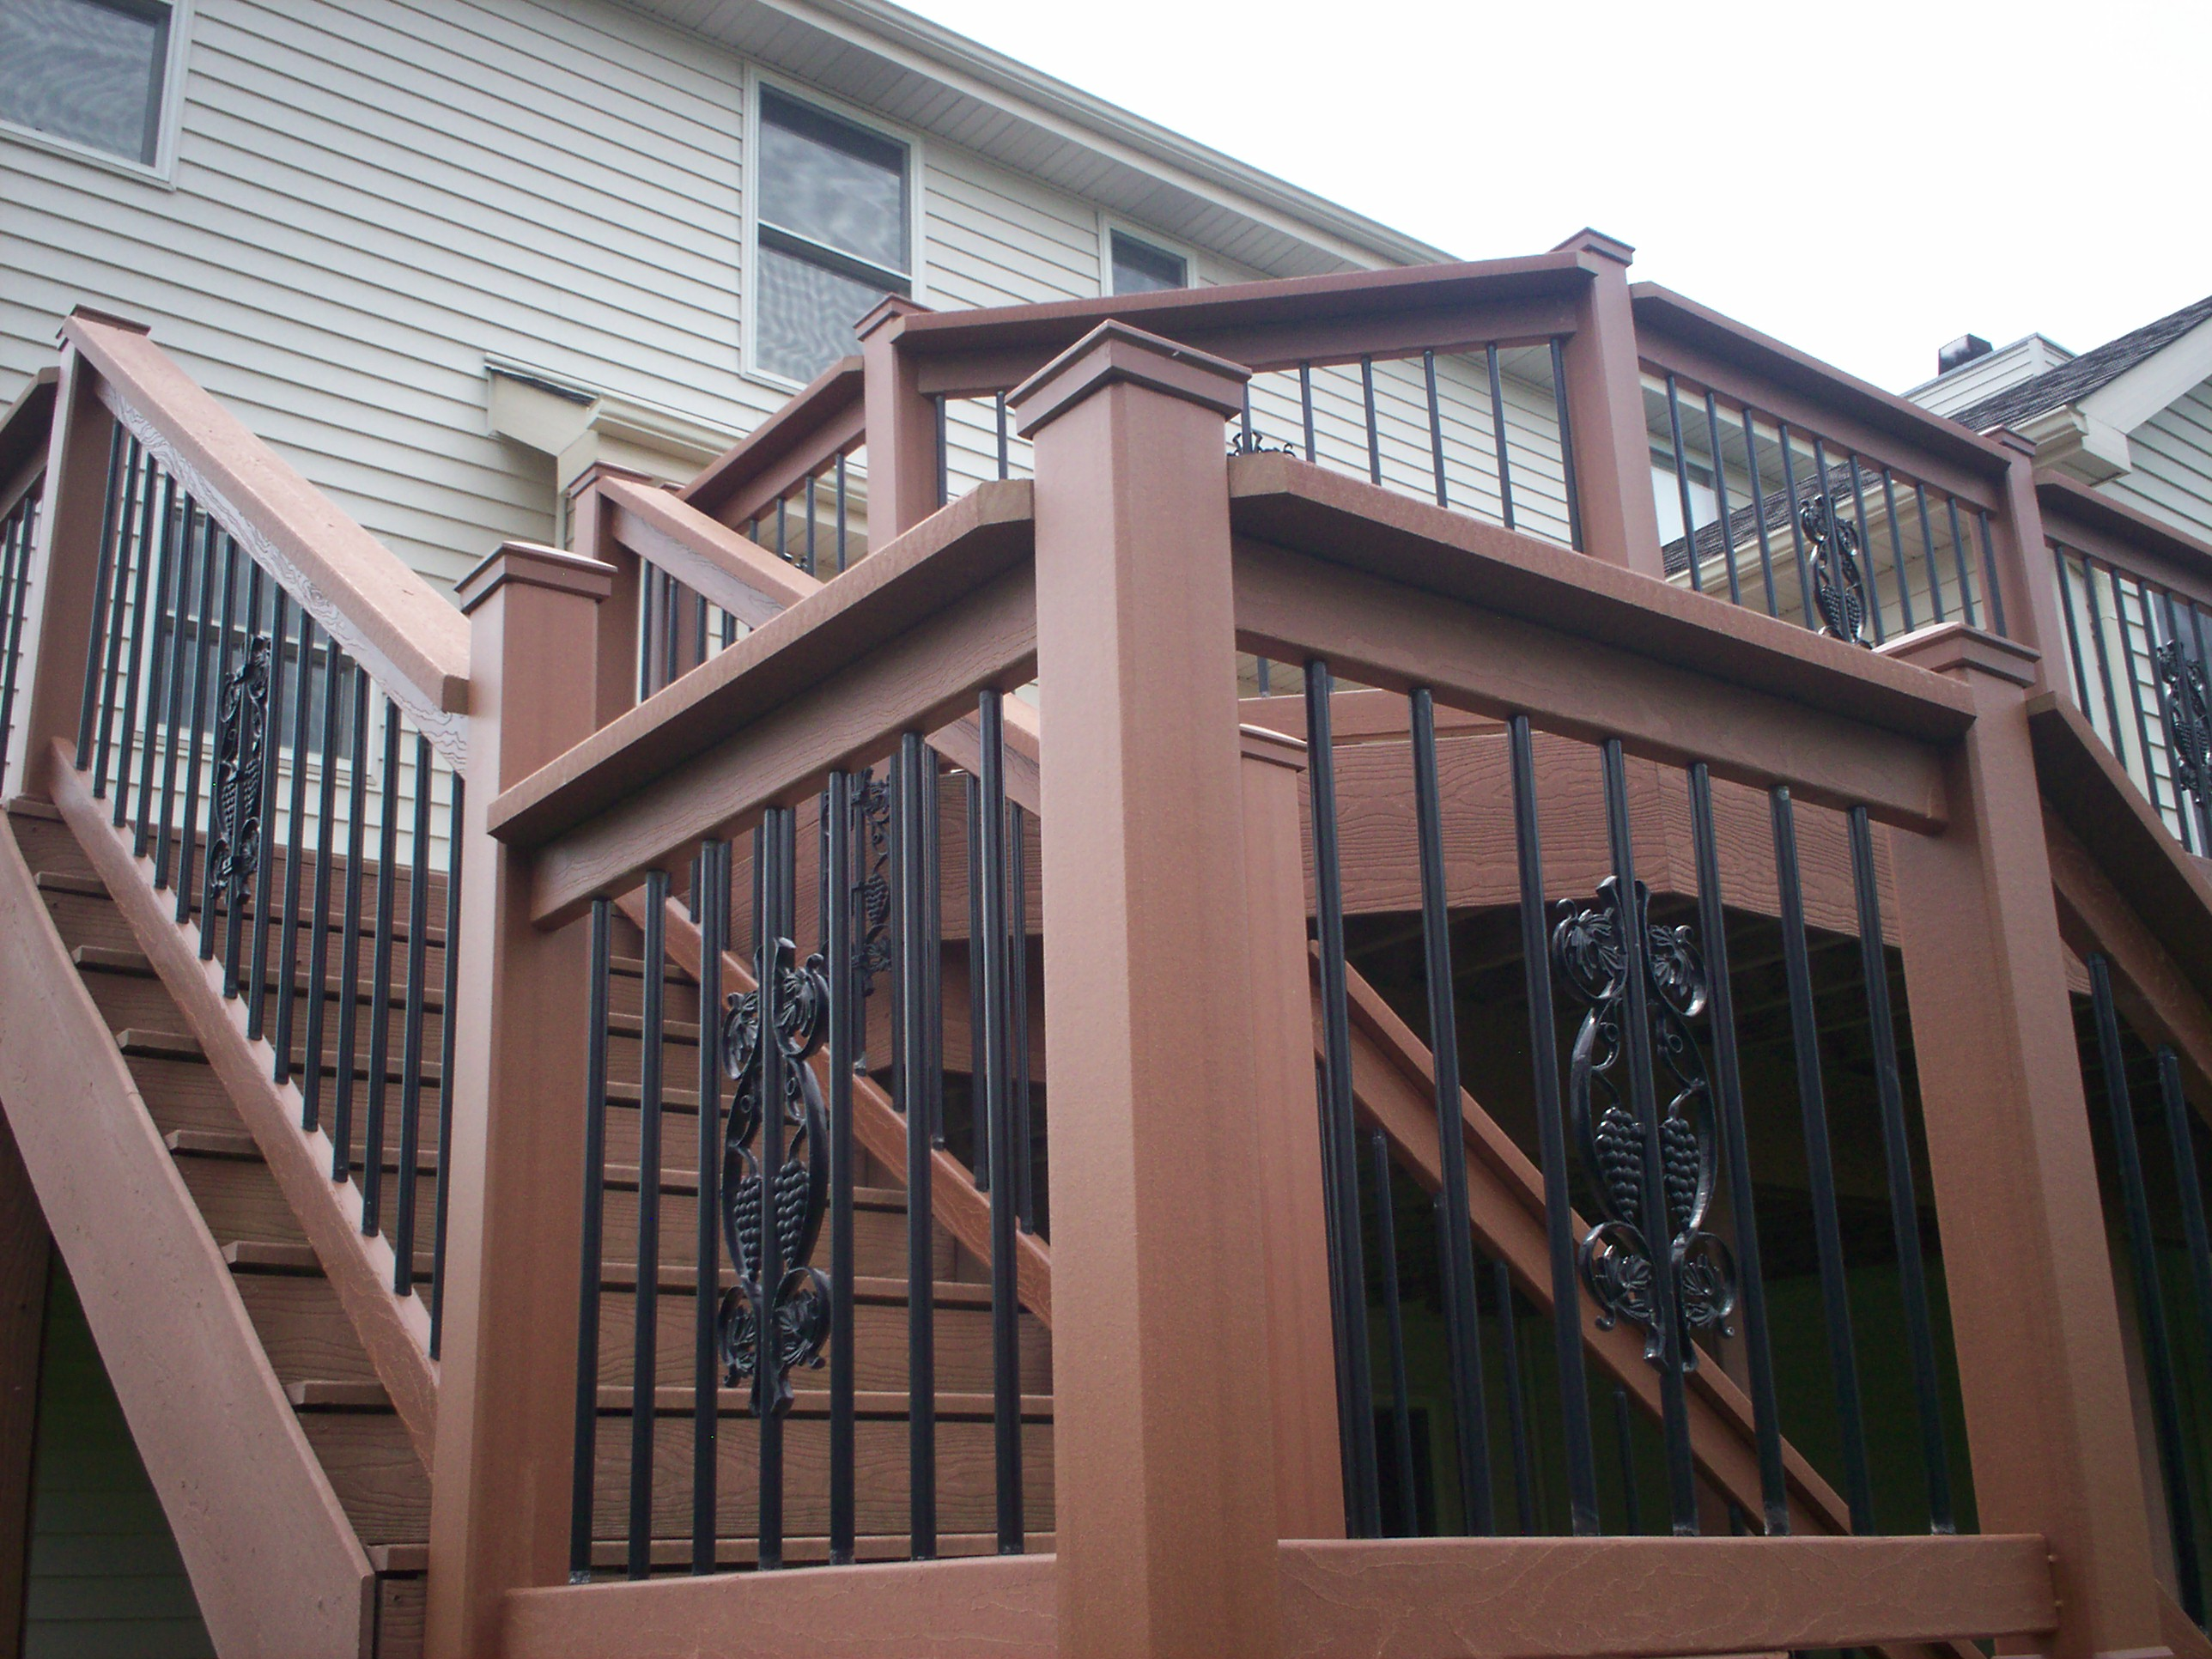 St louis deck design step it up with deck railing and Decorative railings